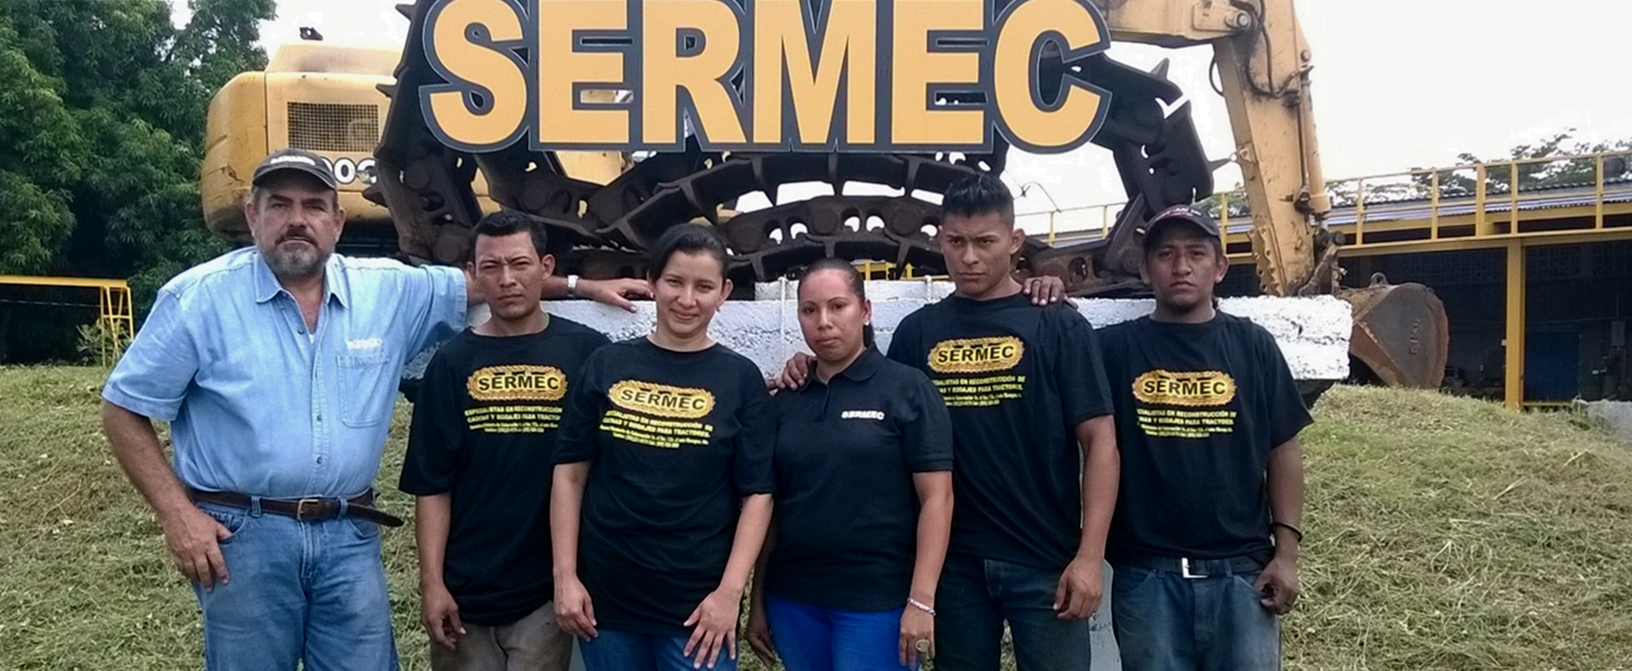 SERMEC-Team2